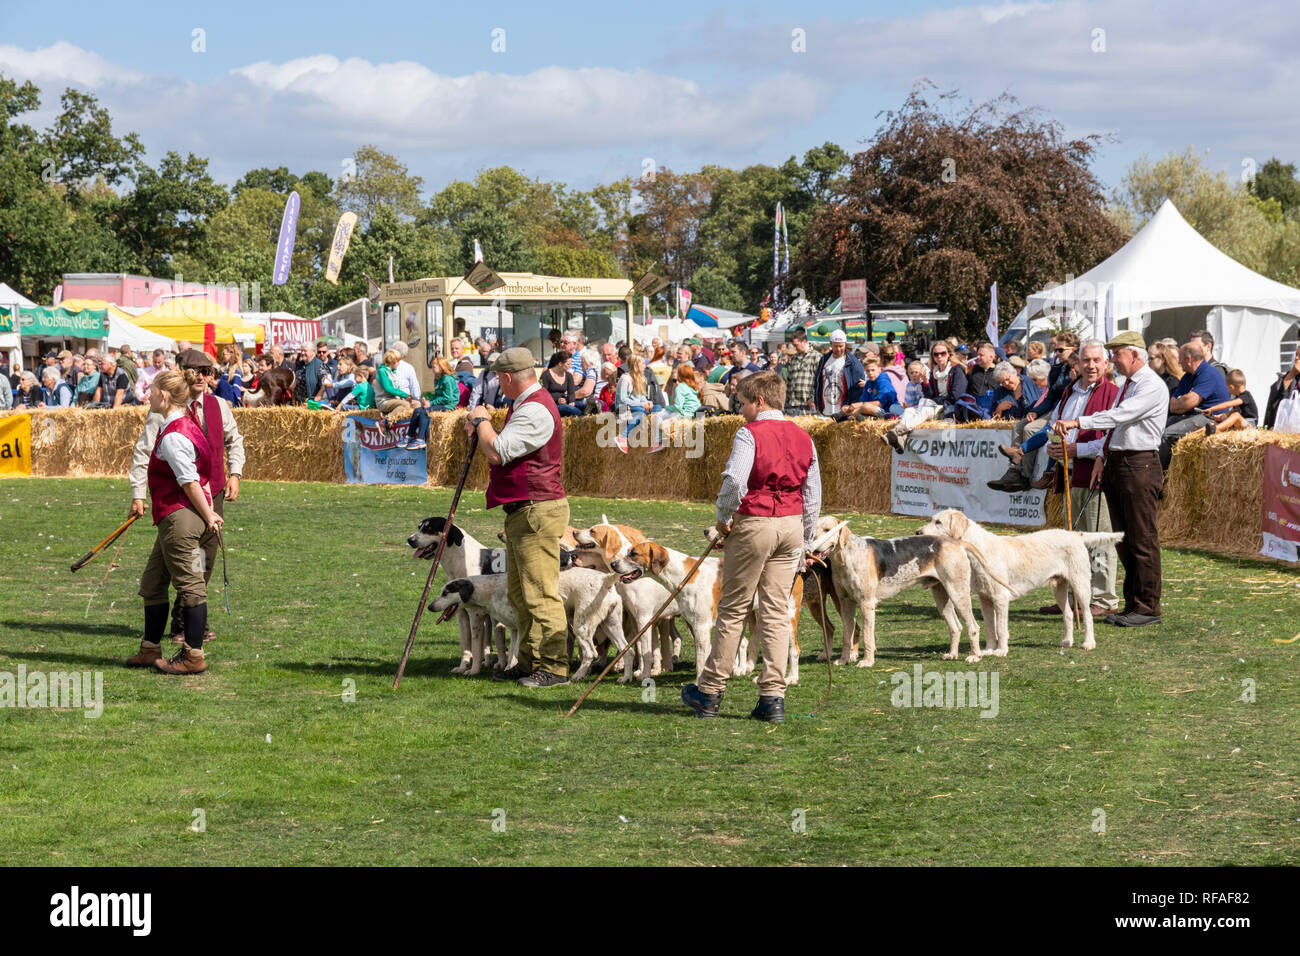 A parade of the hounds at the Frampton Country Fair 2018 held at Frampton Court, Frampton on Severn, Gloucestershire UK - Stock Image